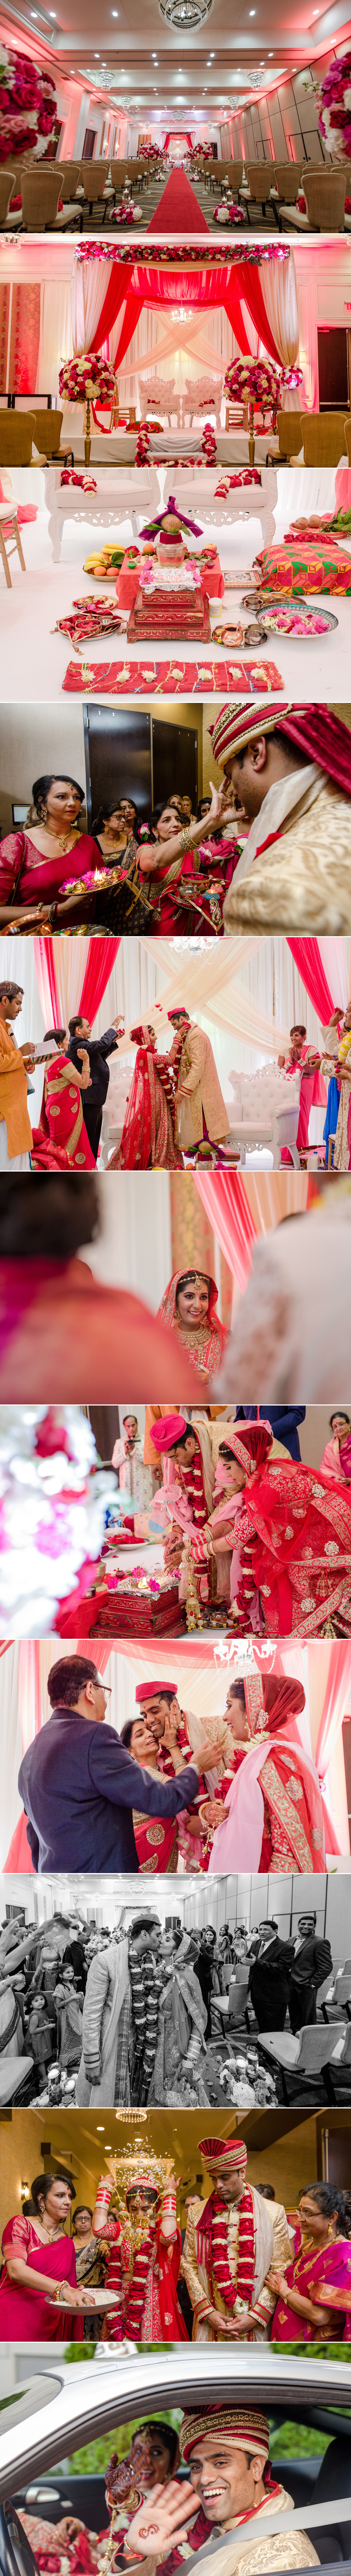 Nashville Indian wedding ceremony